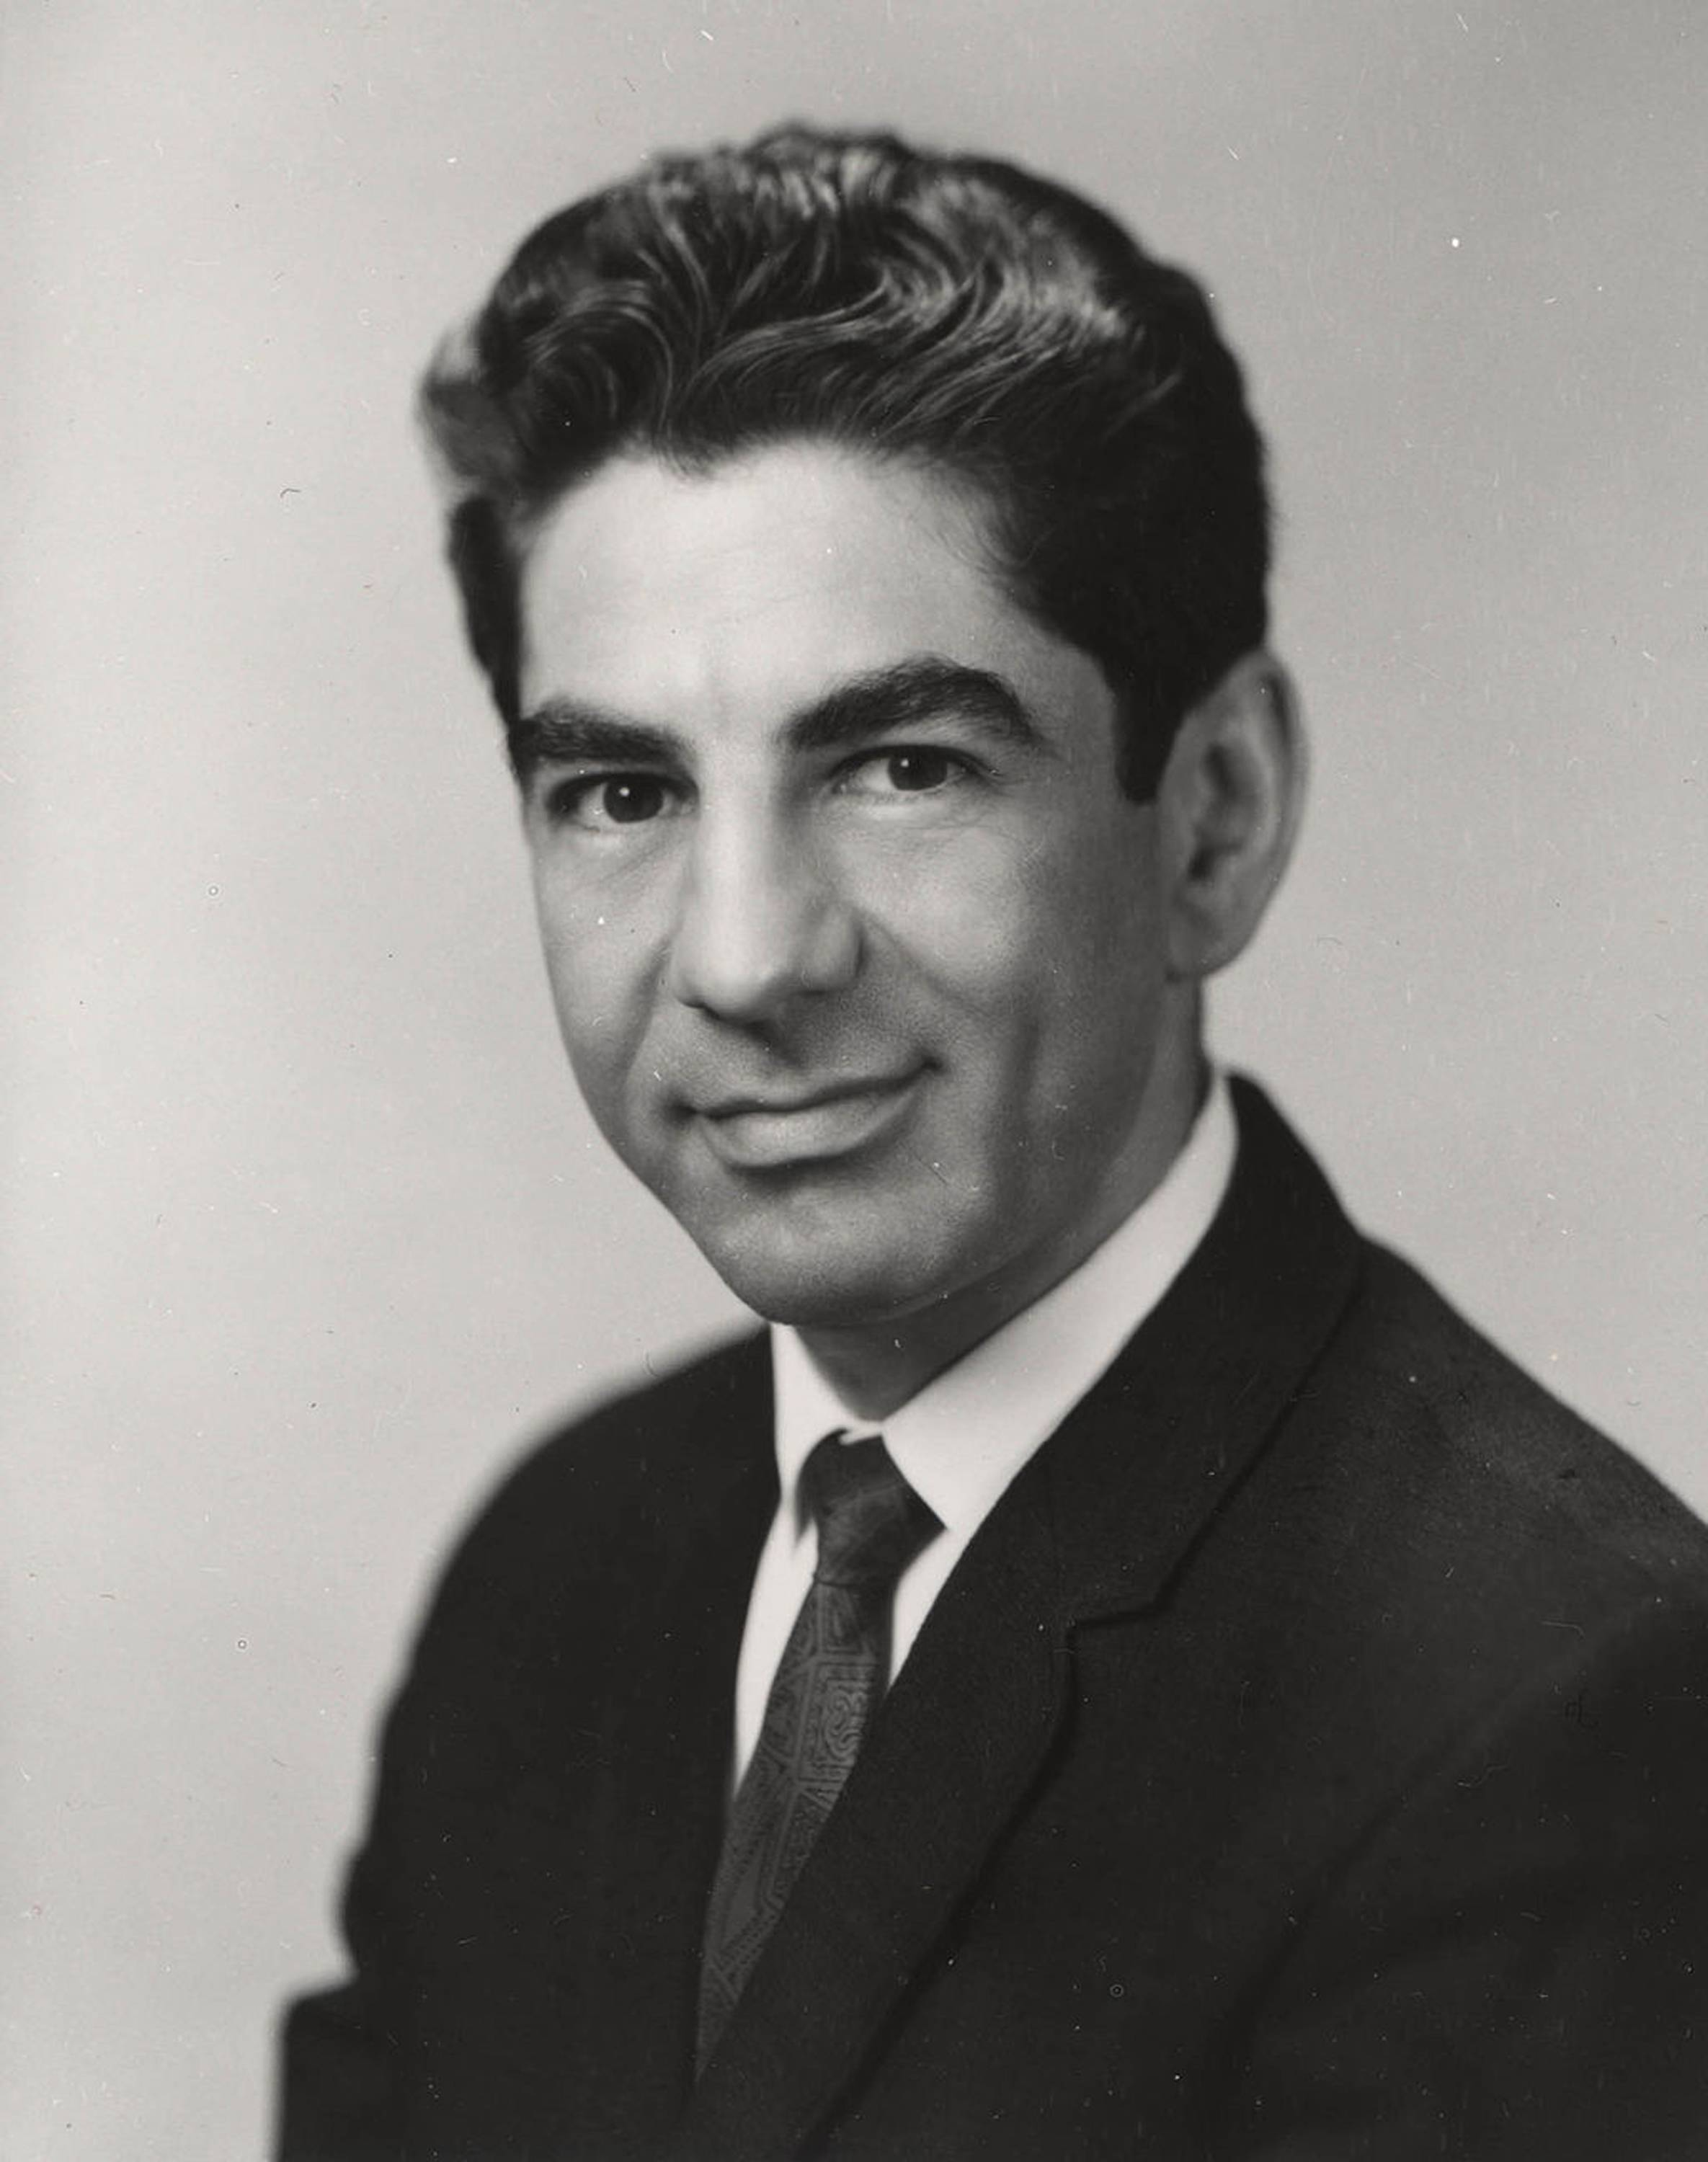 Former U.S. surgeon general Jesse Steinfeld.